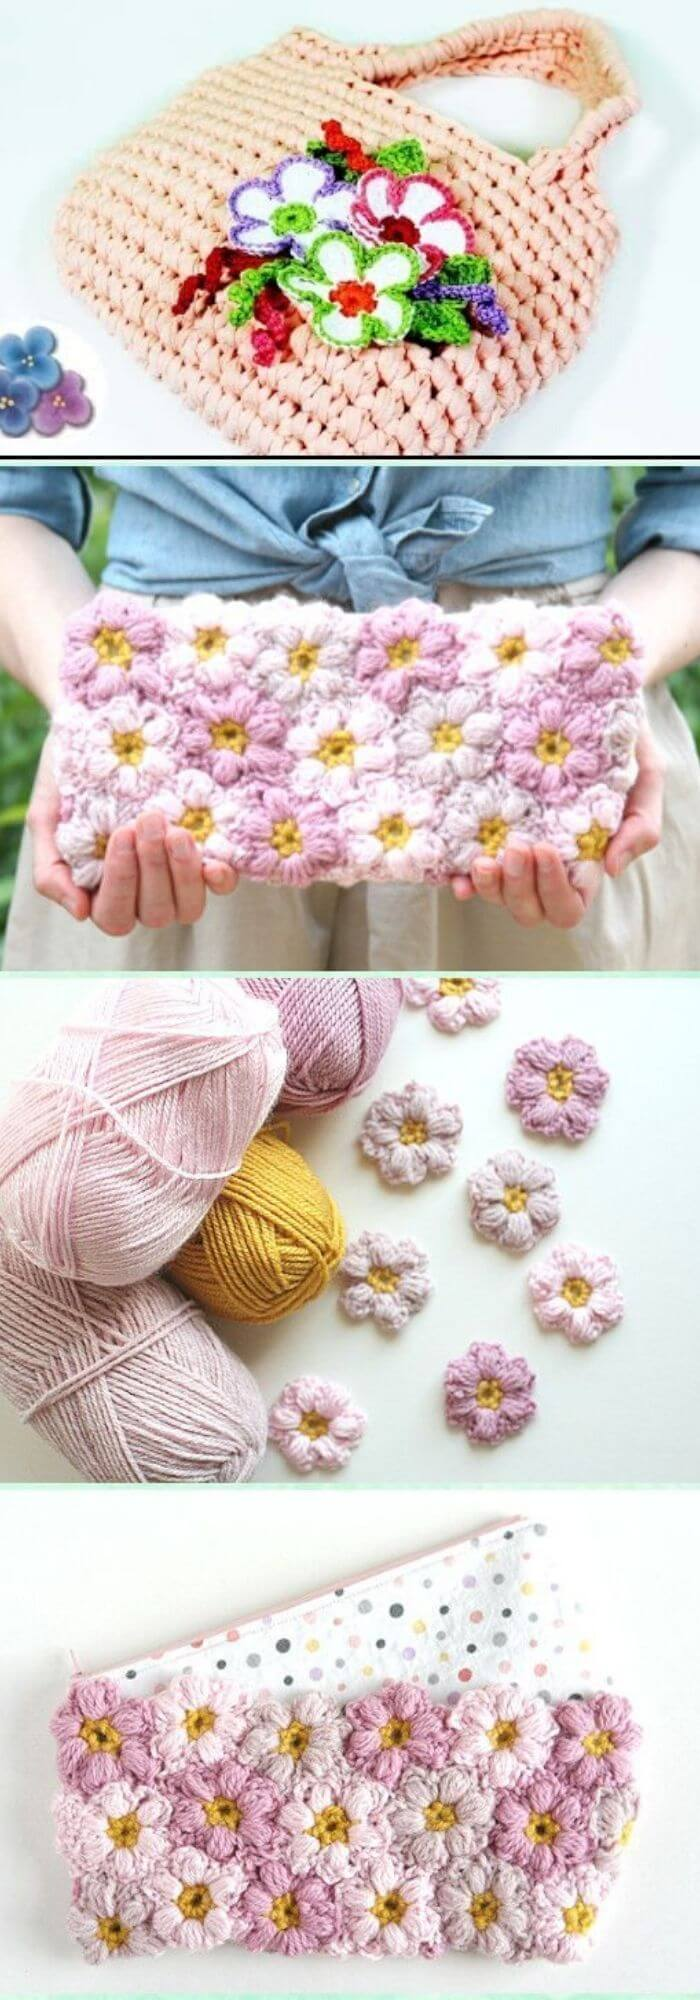 Crocheting a bag with flowers